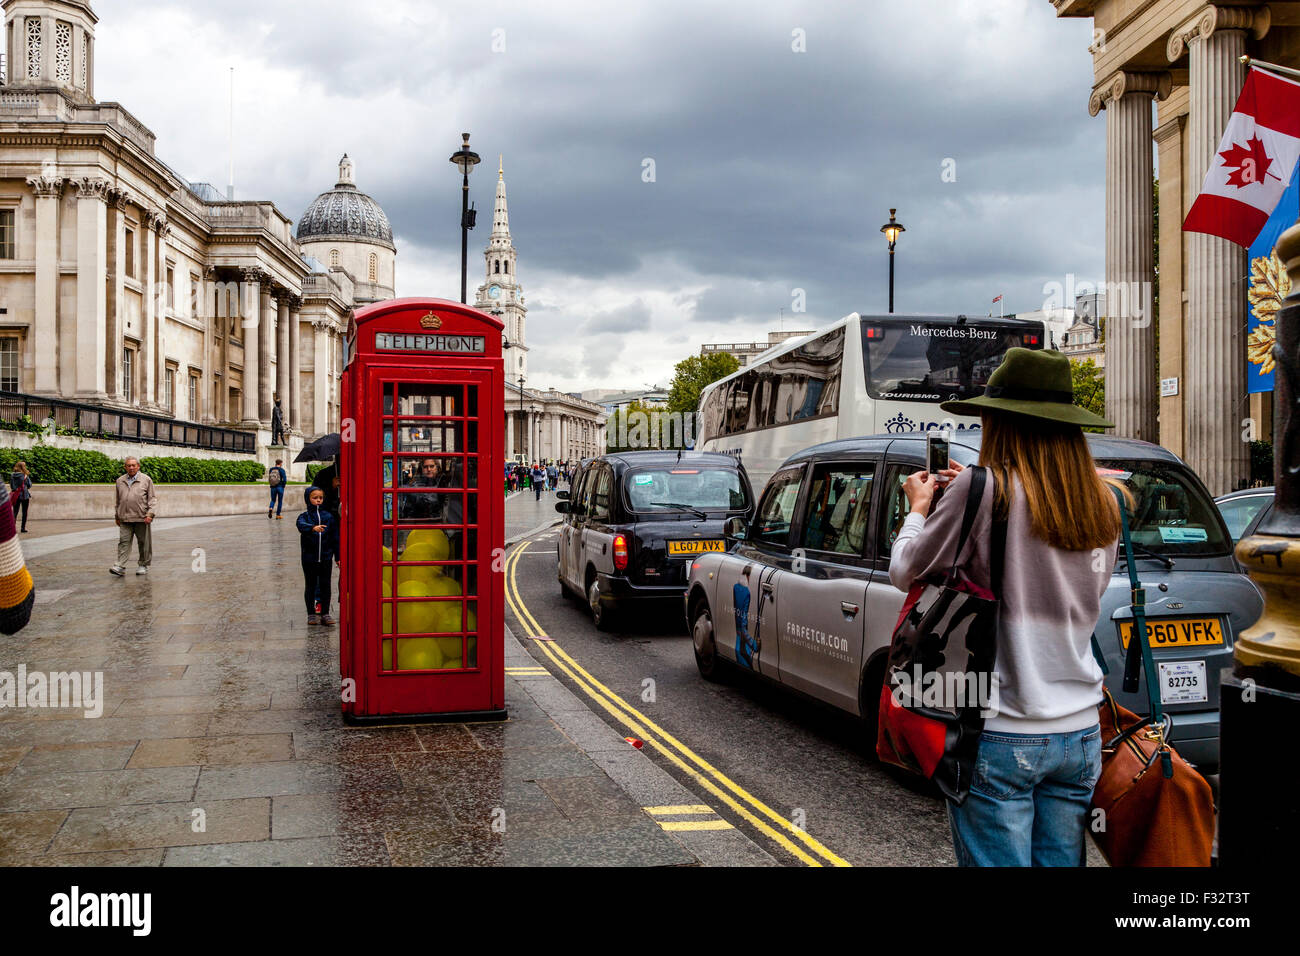 A Traditional Red Telephone Box Outside The National Gallery, London, UK - Stock Image